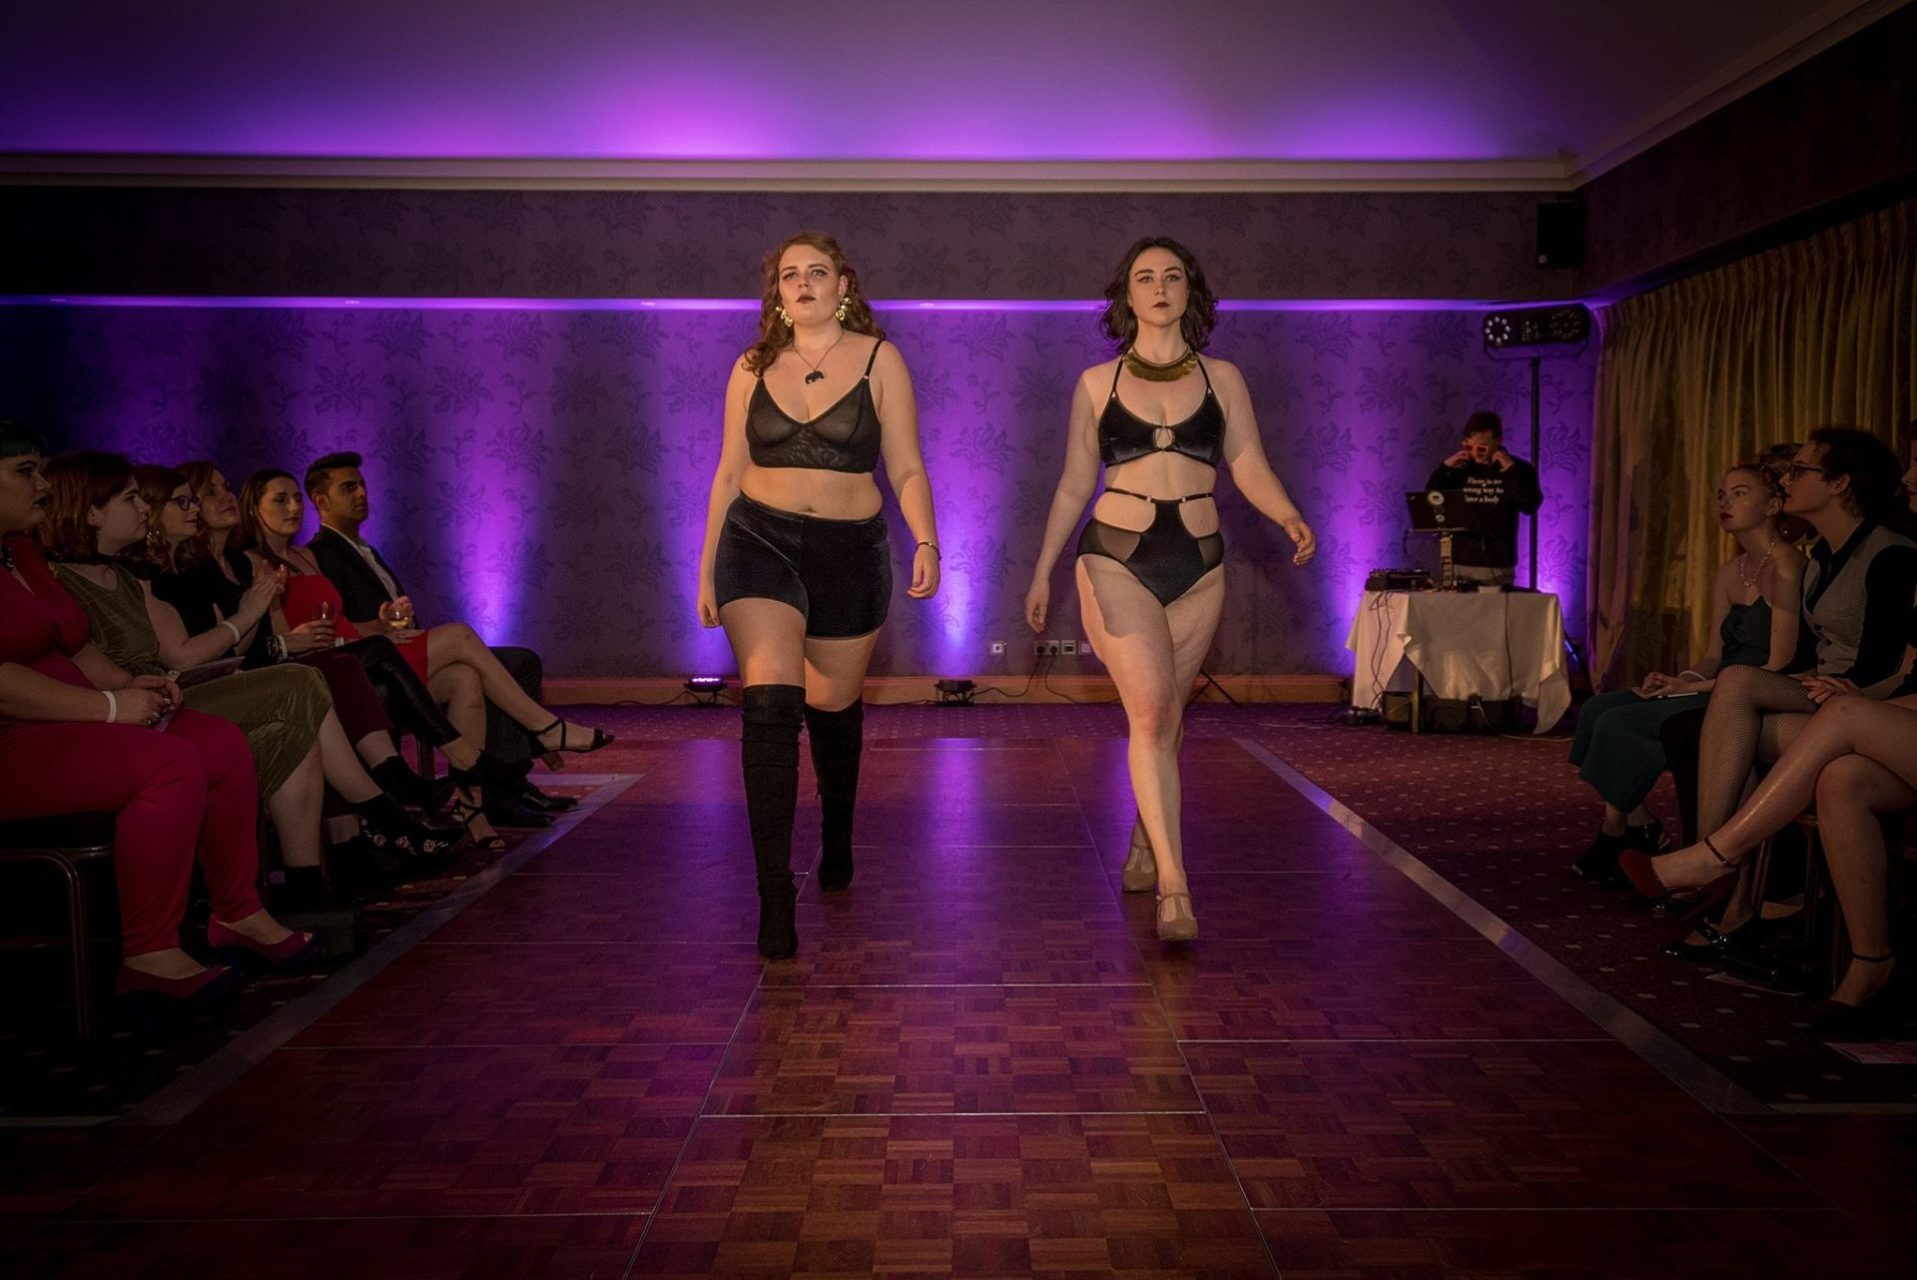 Georgia Set & DMC bra on the Catwalk